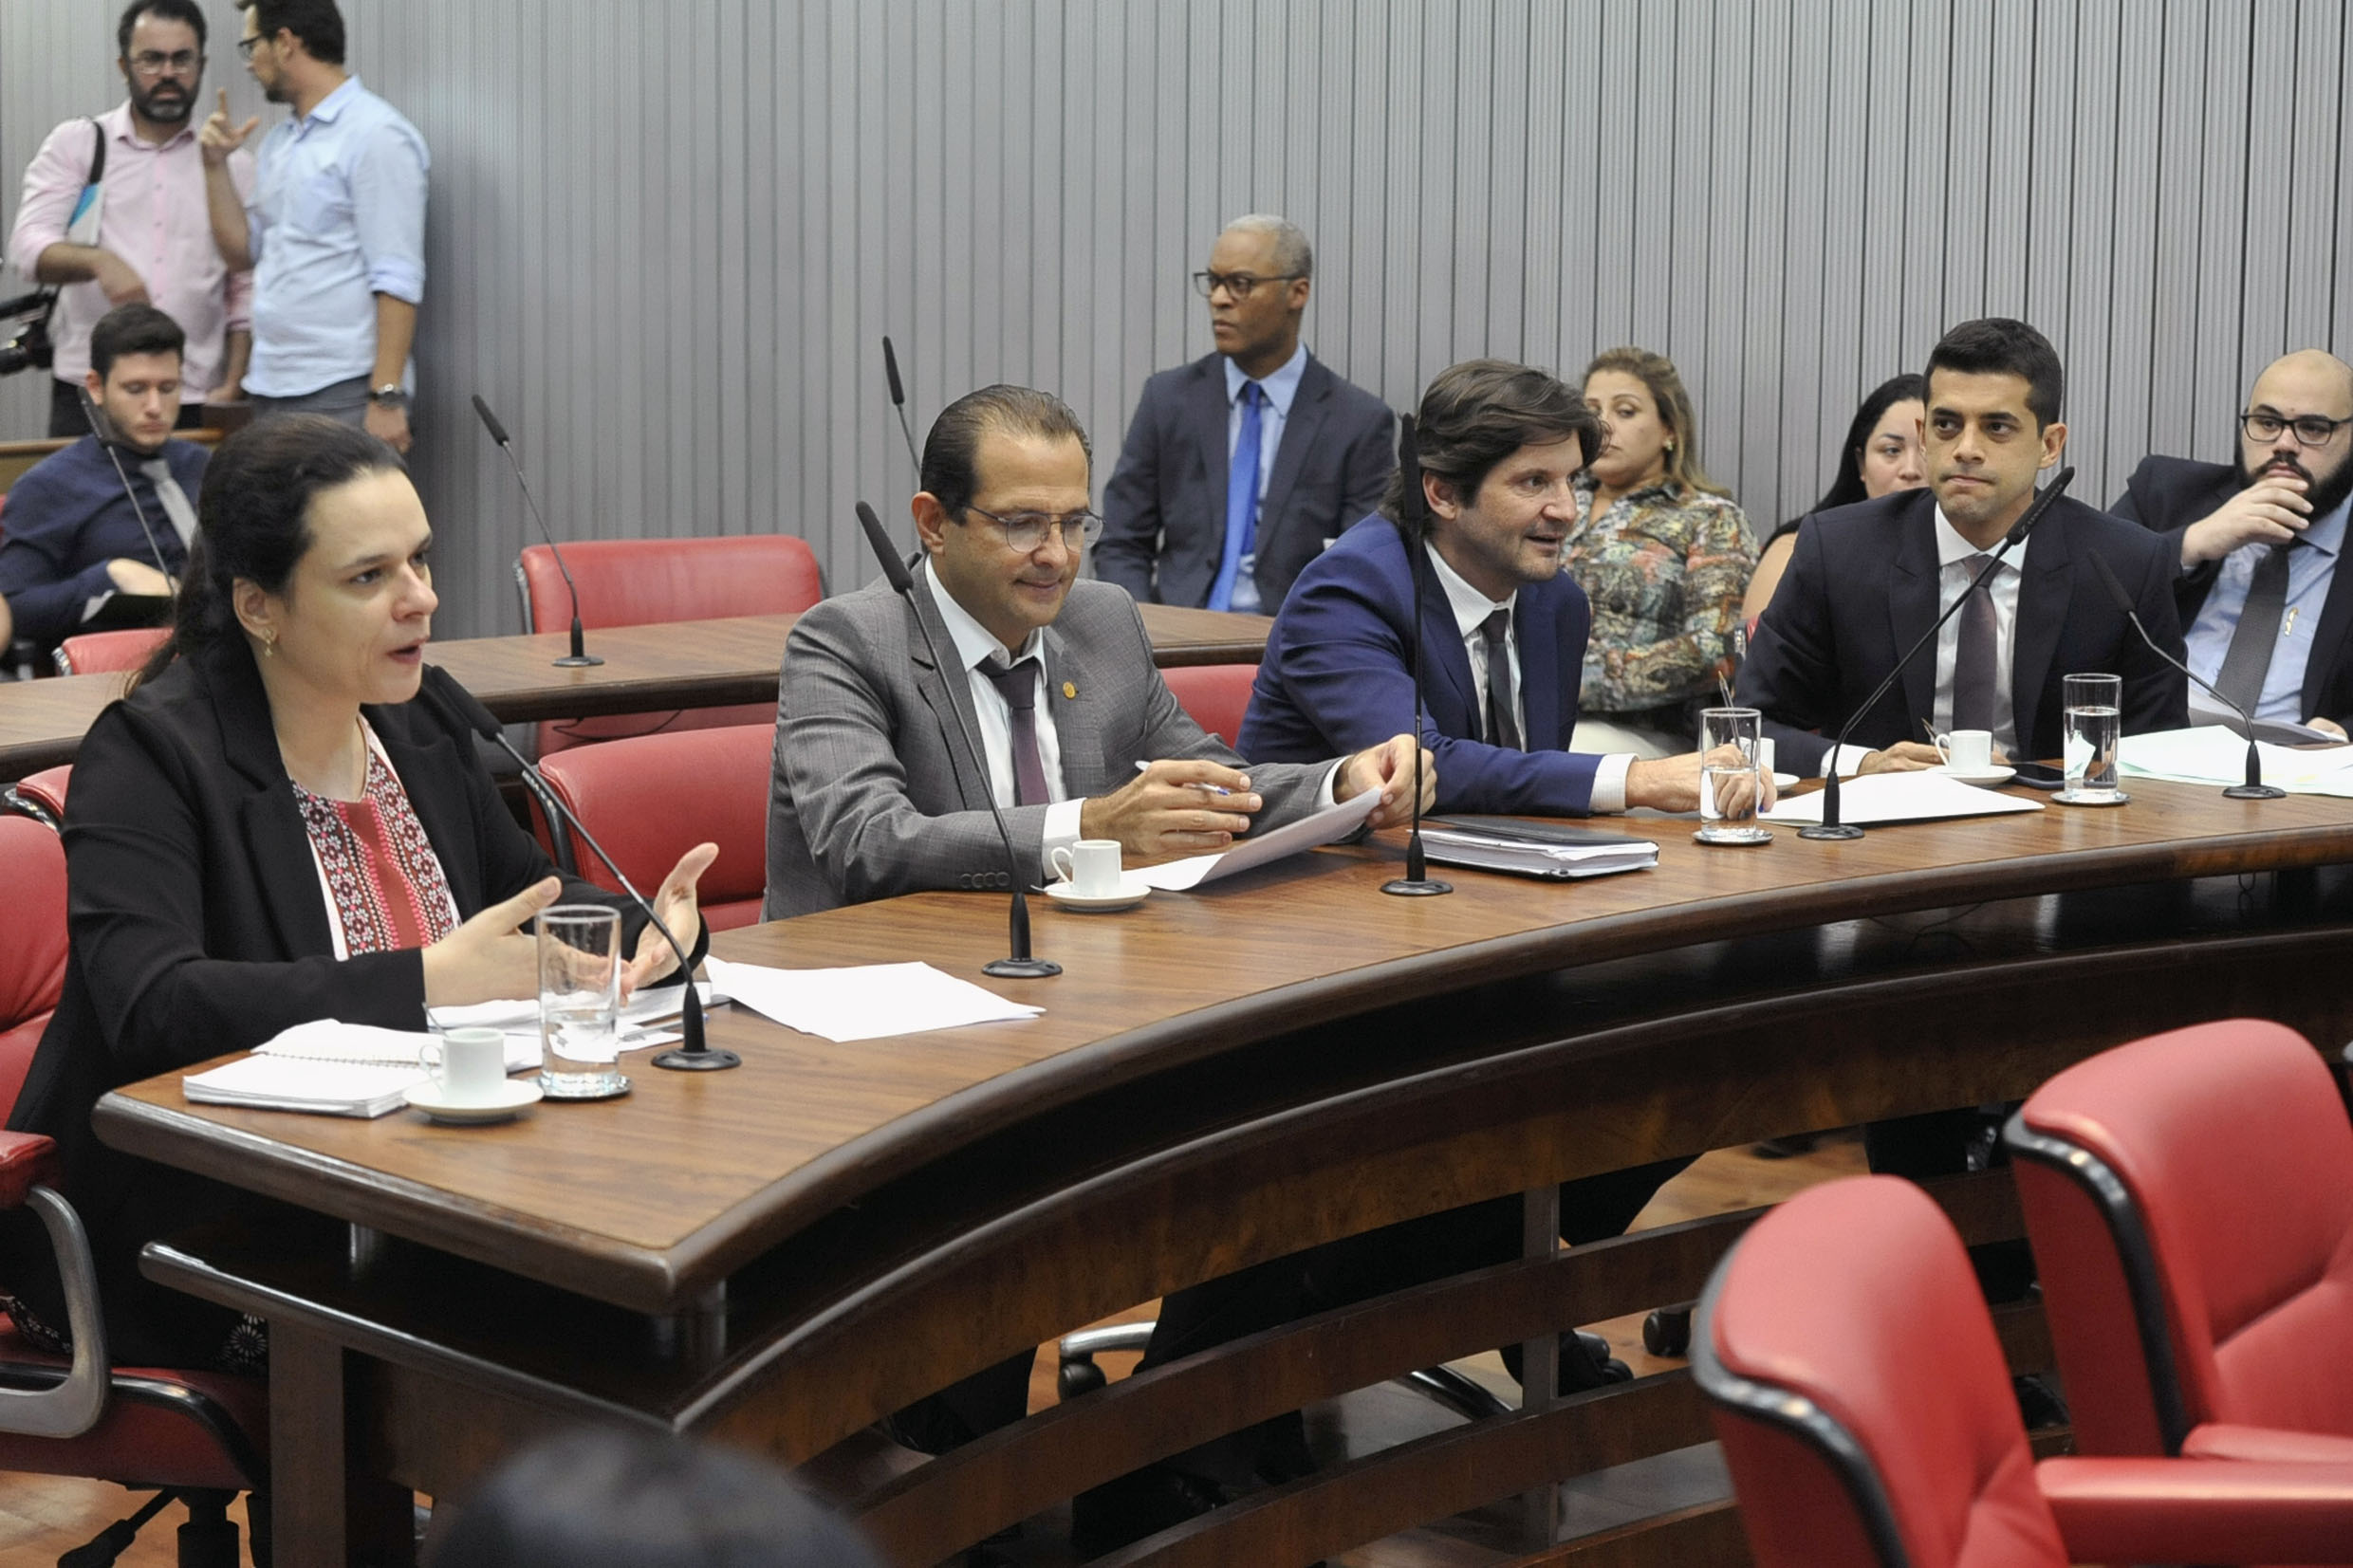 Parlamentares na comissão<a style='float:right' href='https://www3.al.sp.gov.br/repositorio/noticia/N-04-2019/fg233431.jpg' target=_blank><img src='/_img/material-file-download-white.png' width='14px' alt='Clique para baixar a imagem'></a>